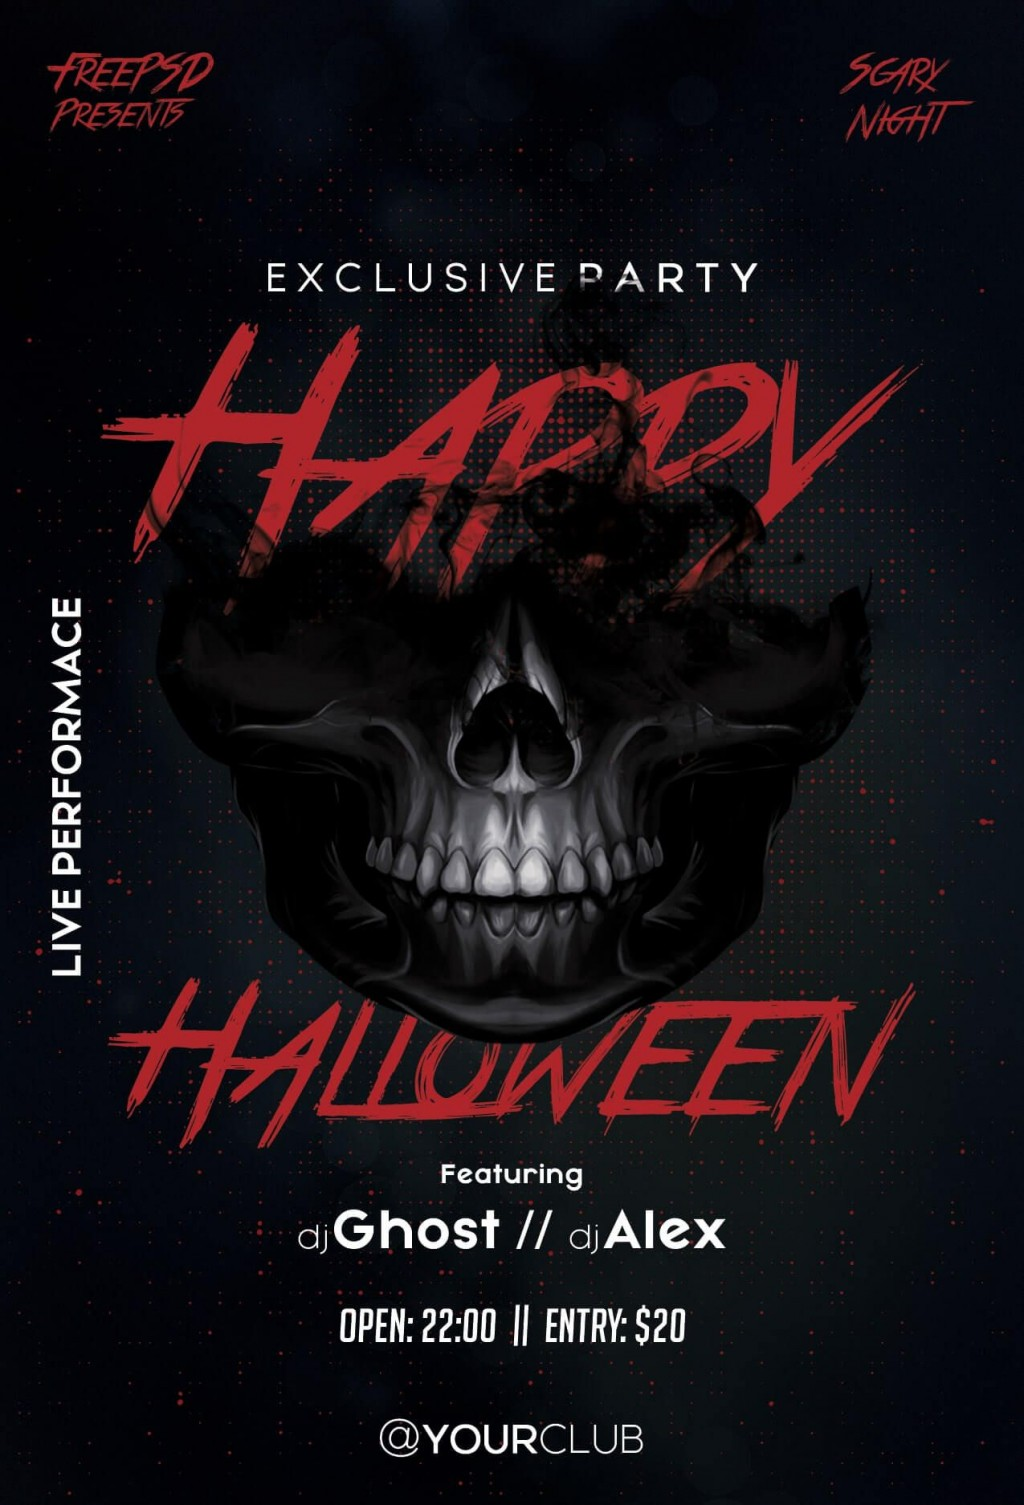 007 Remarkable Free Halloween Party Flyer Template Inspiration  TemplatesLarge